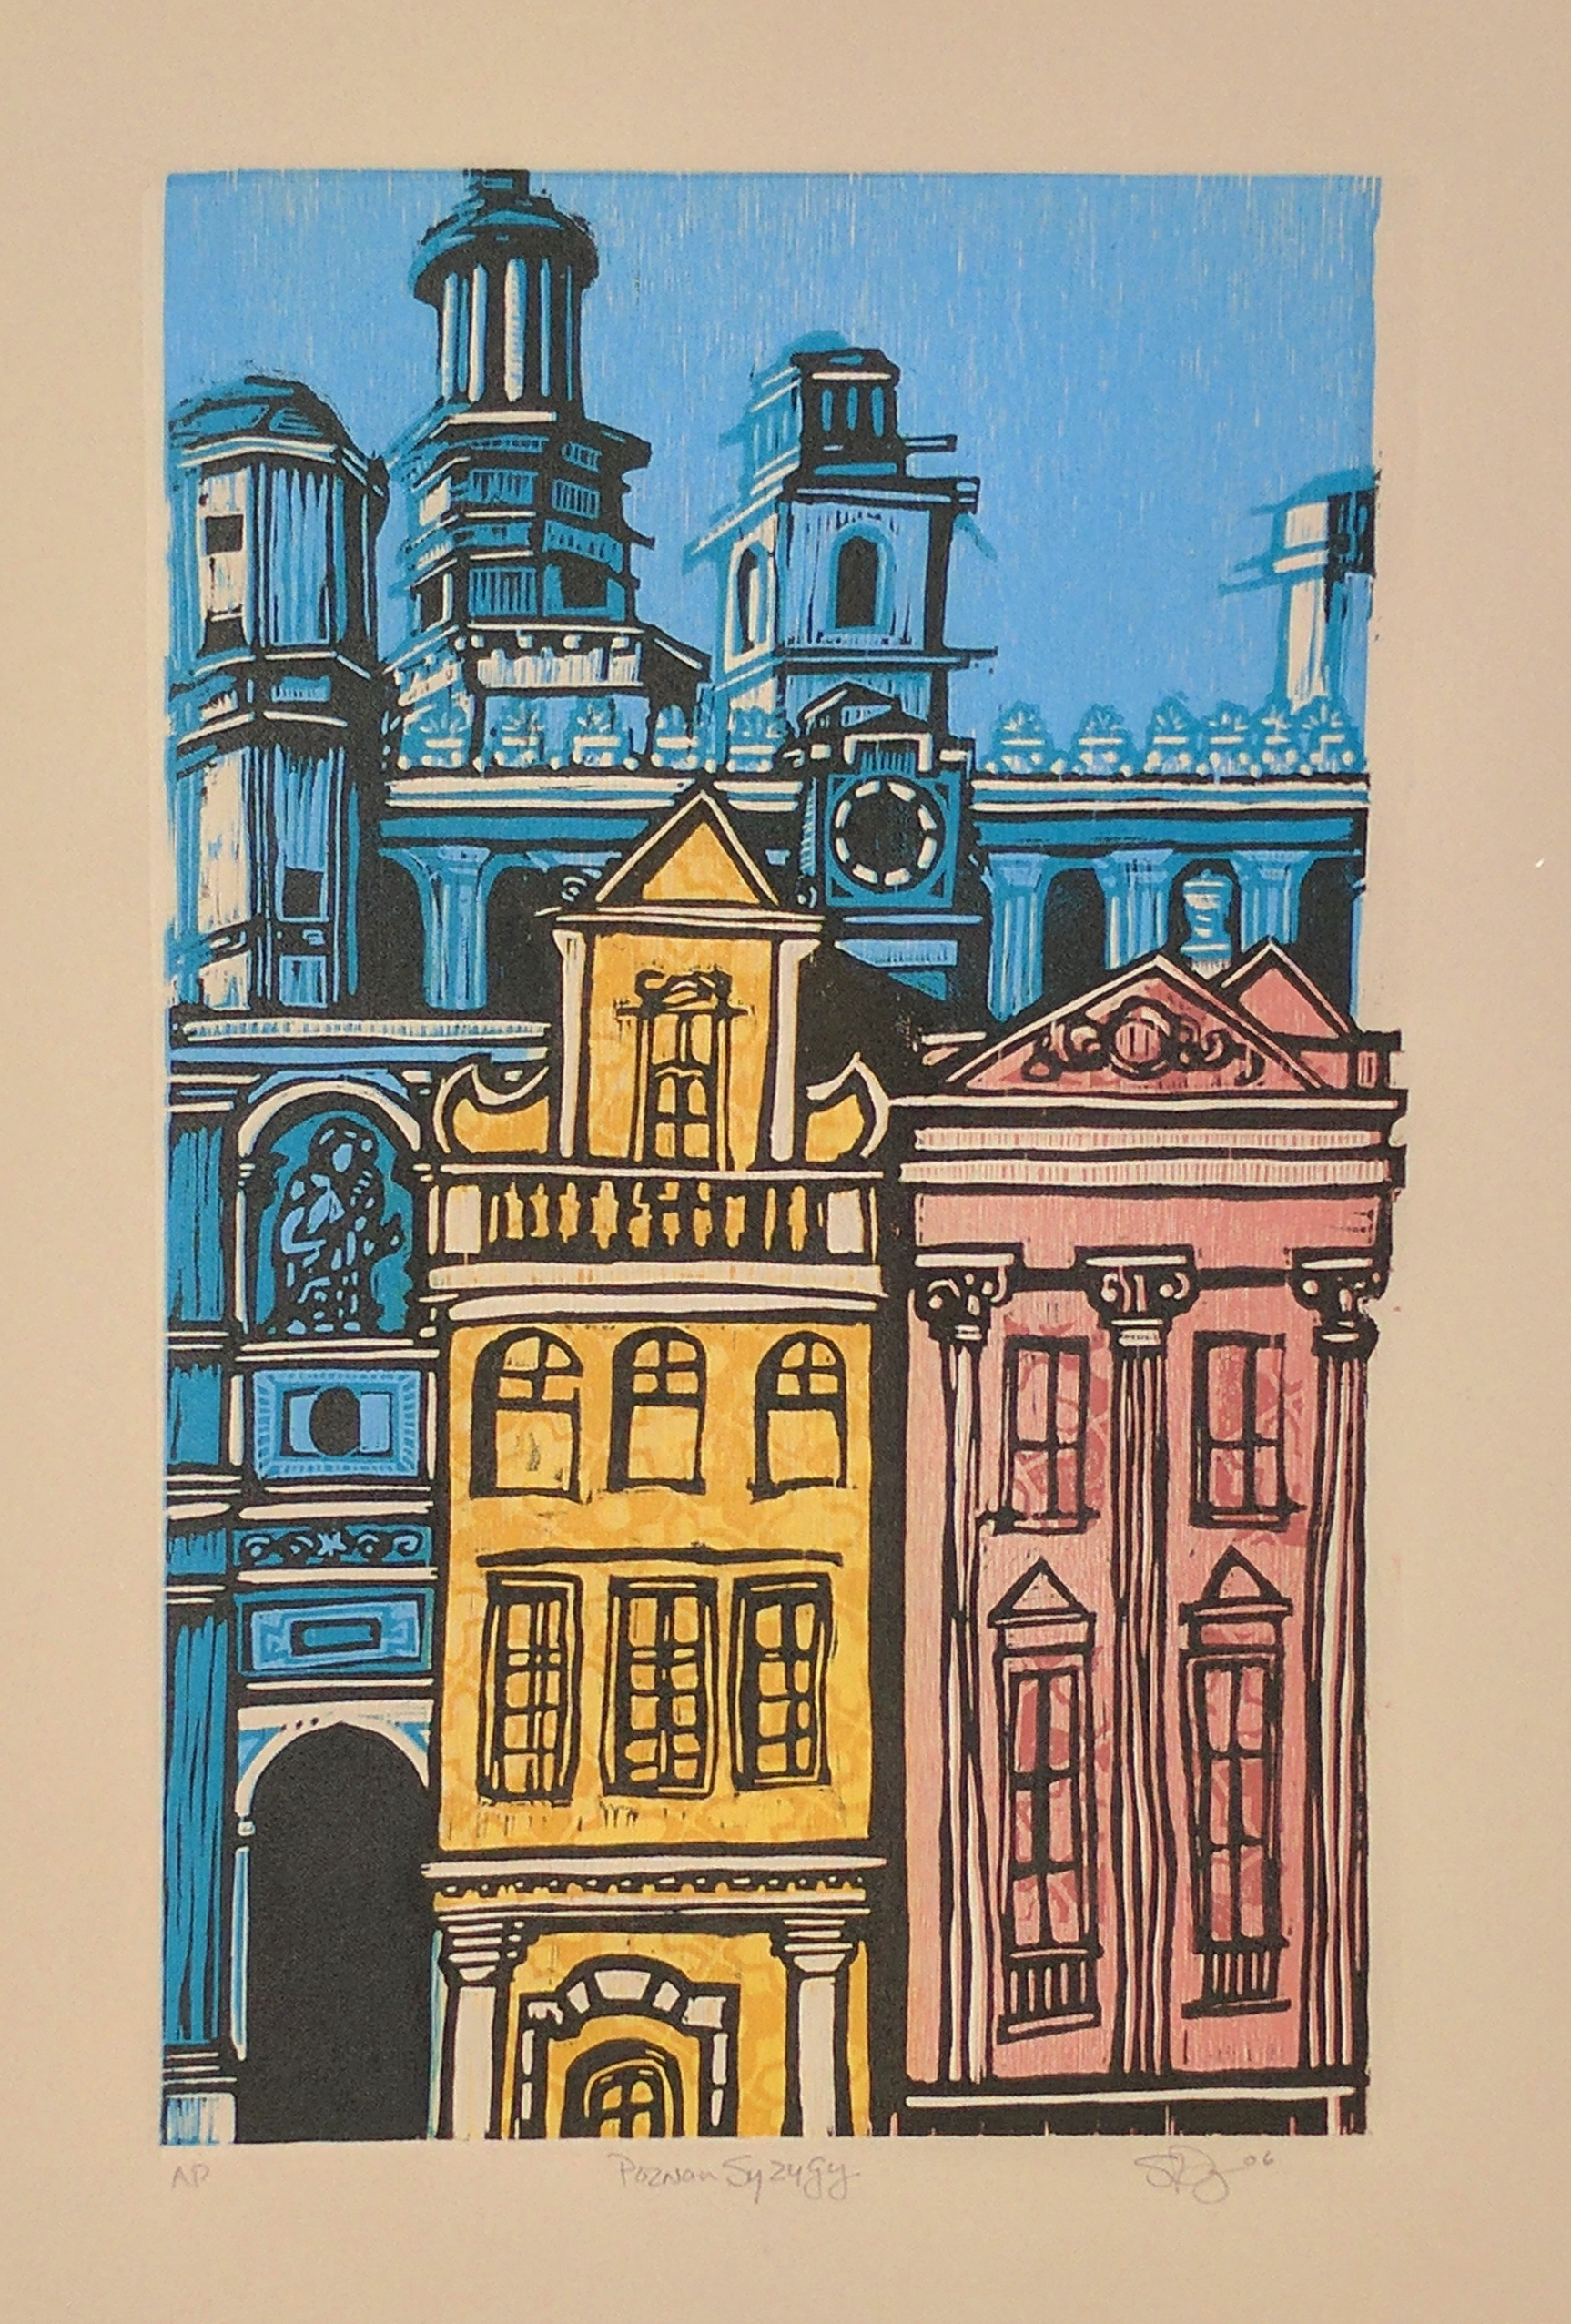 Linoleum Block Printing Can Create Unlimited Color Combinations And Multiple Impressions